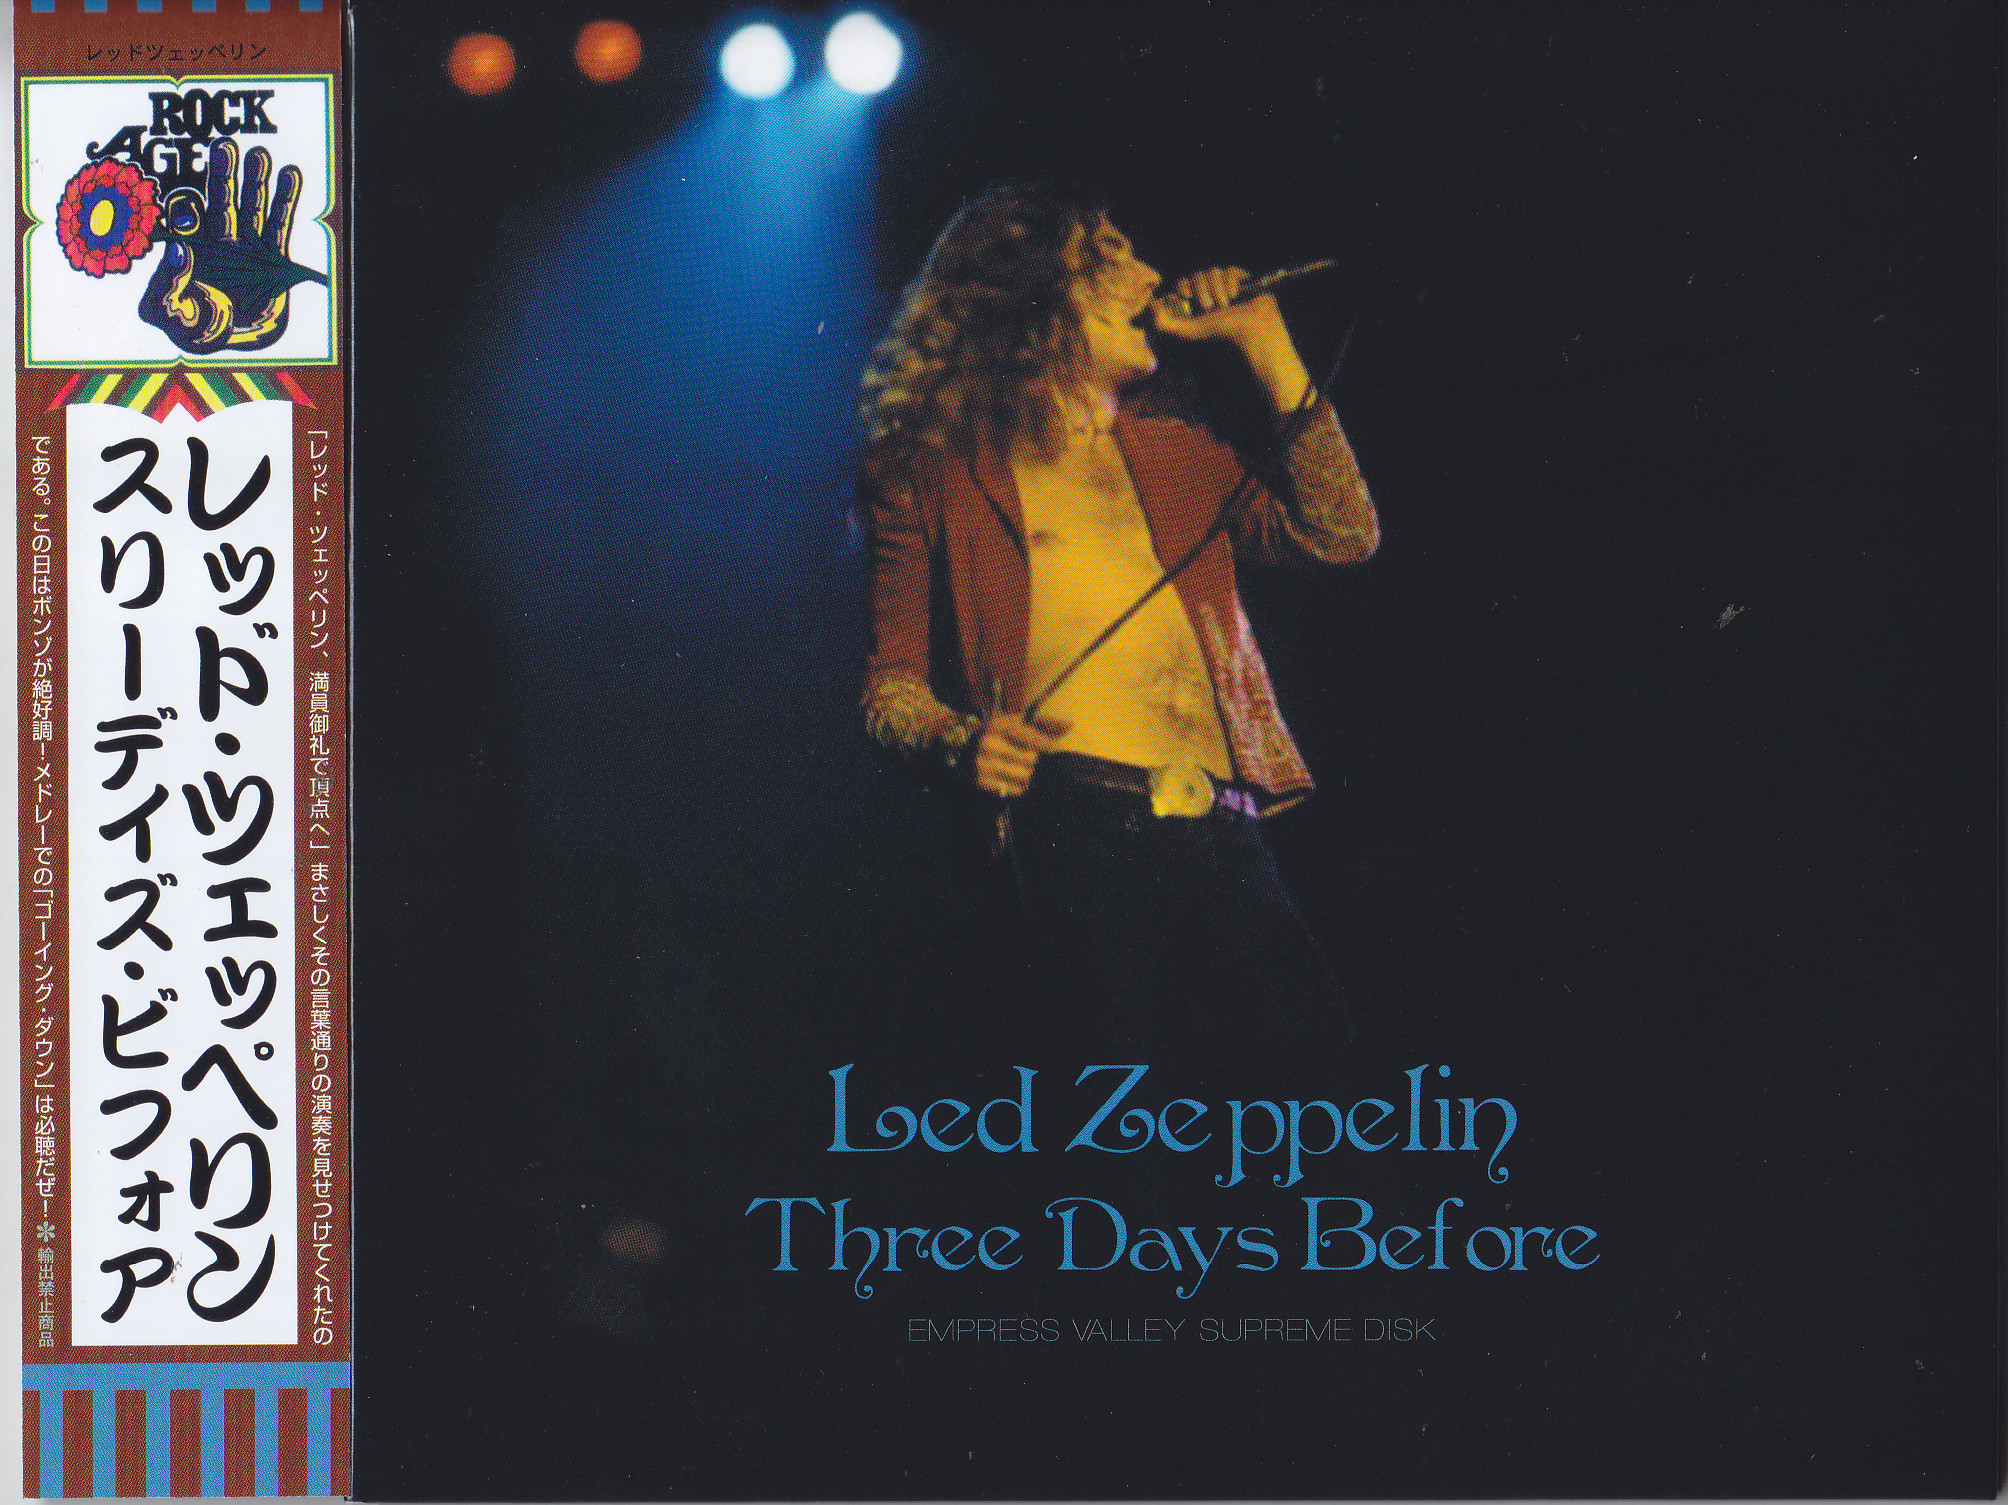 Led Zeppelin- Three Days Before(2CD Slipcase With OBI Strip)Empress Valley  Supreme Disk  EVSD-153/154